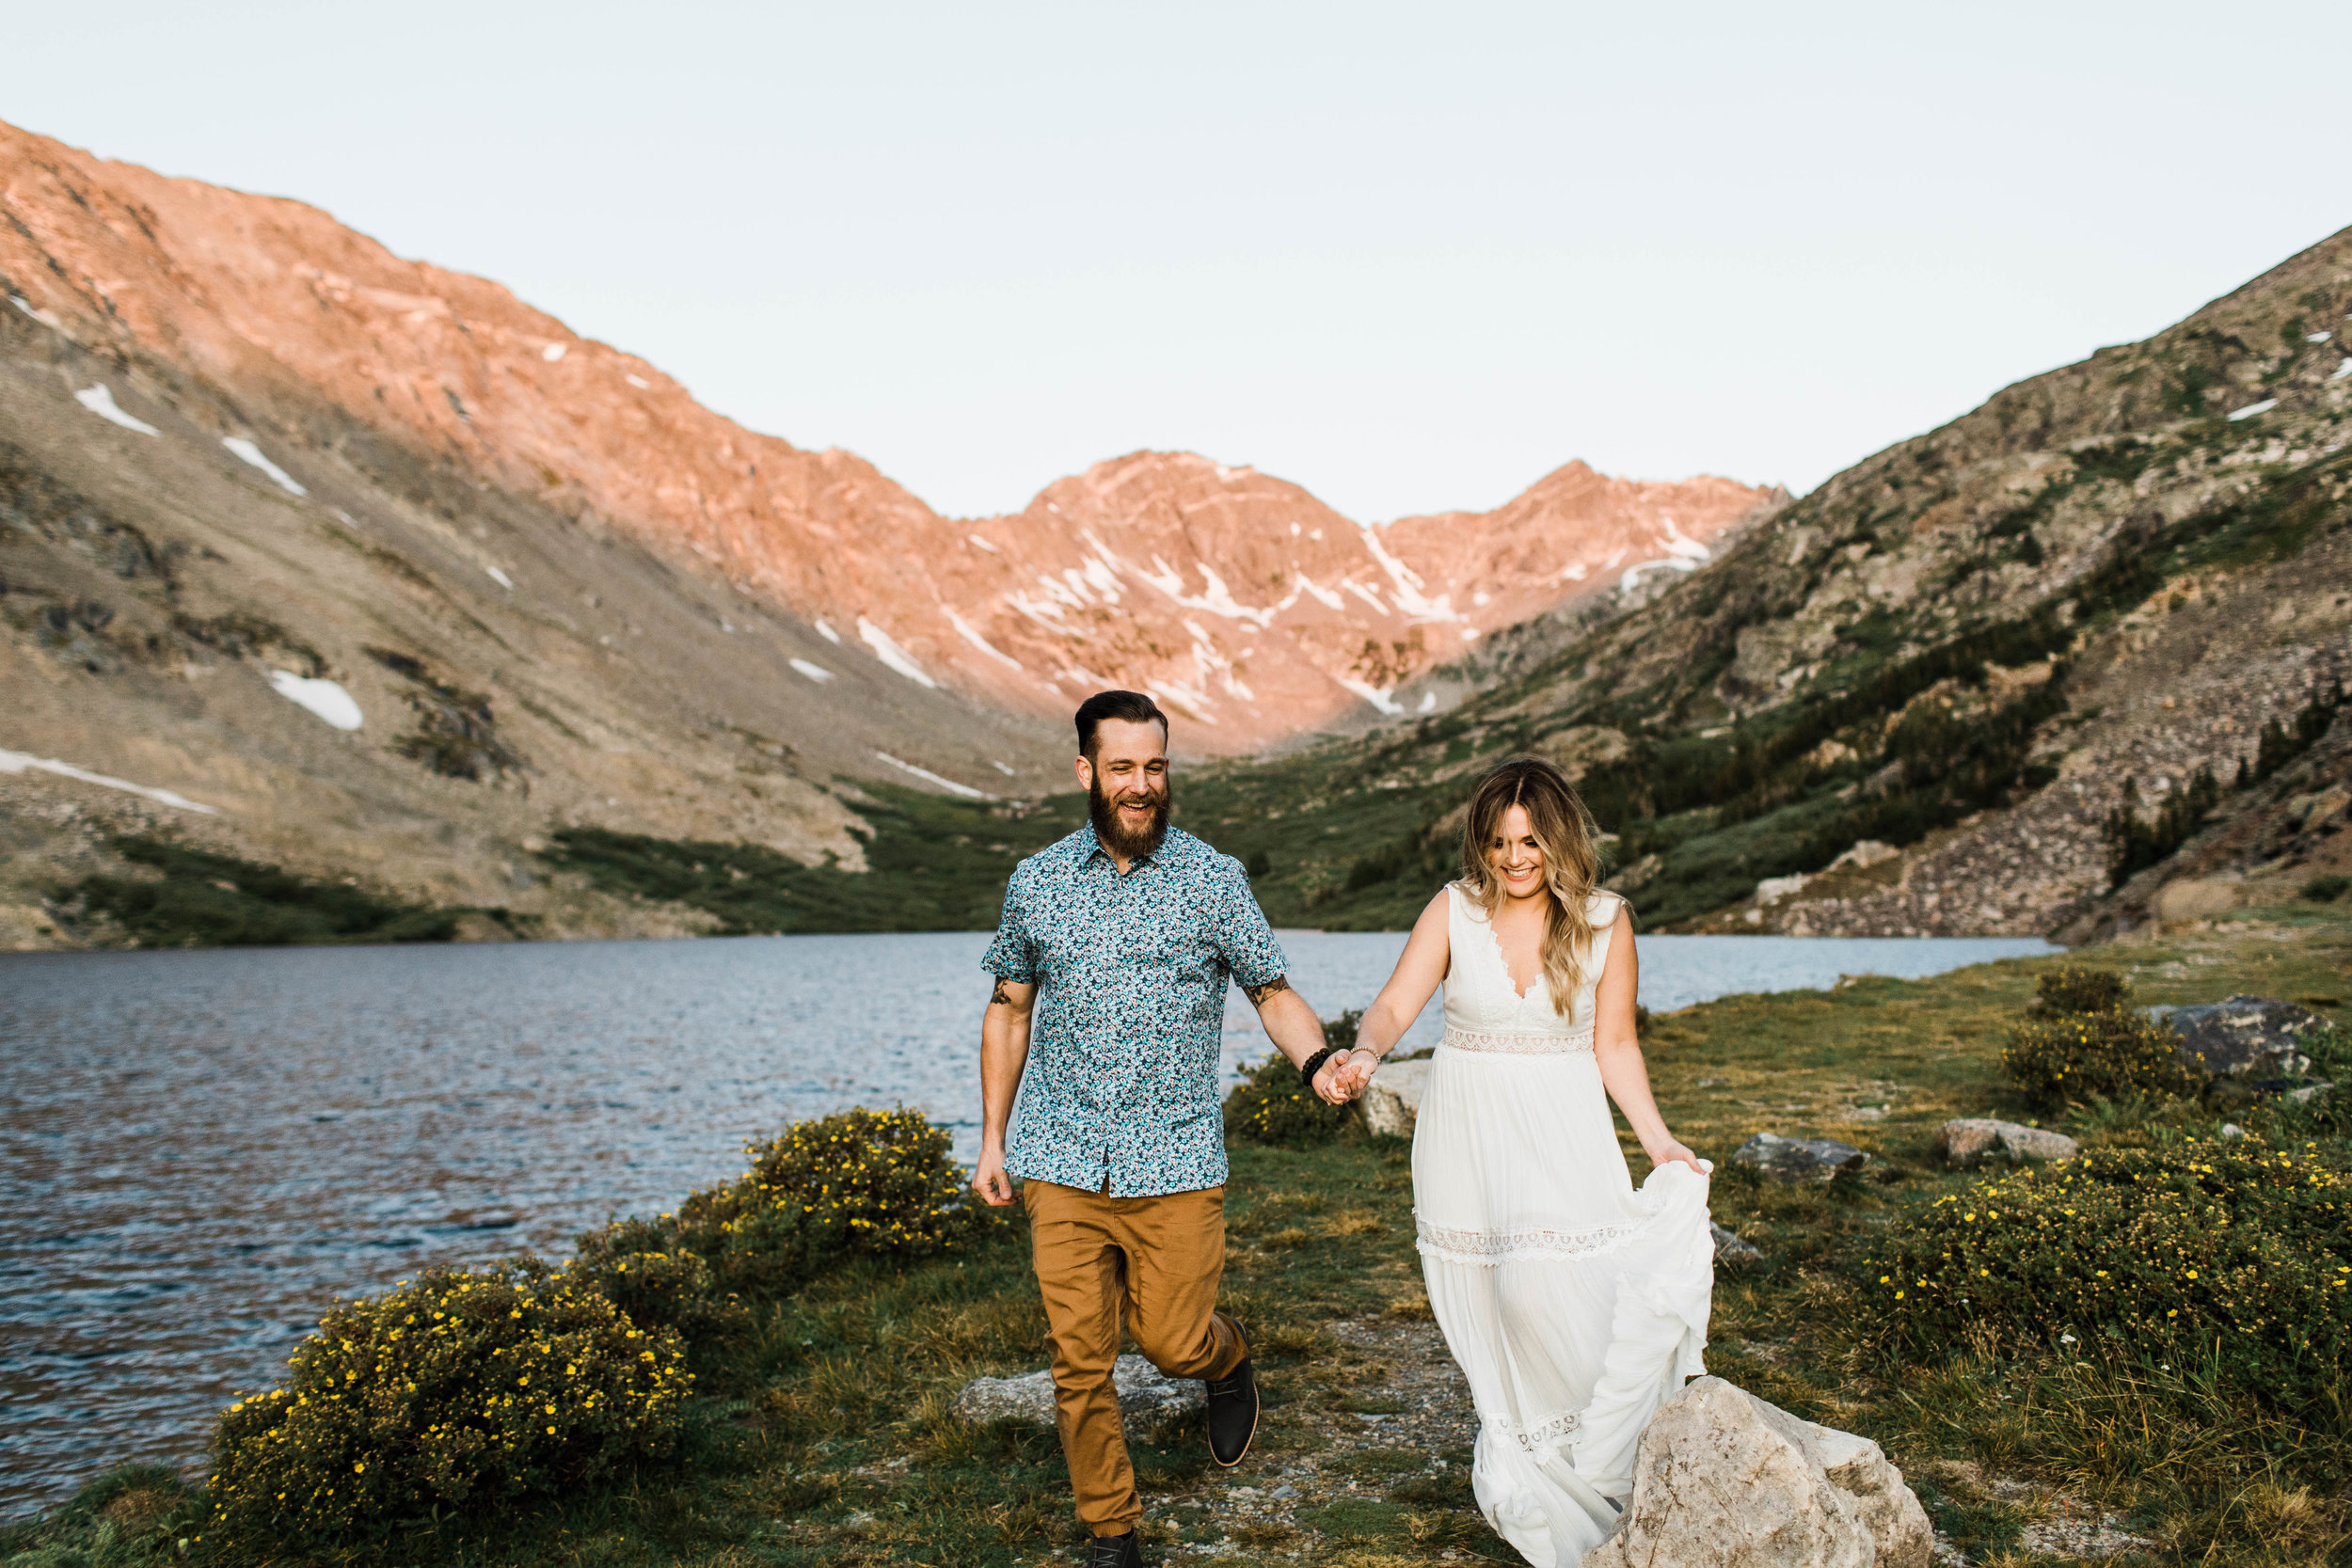 Engaged couple running together in the mountains during their Breckenridge adventure engagement photos at an alpine lake | Breckenridge CO elopement  and wedding photographers